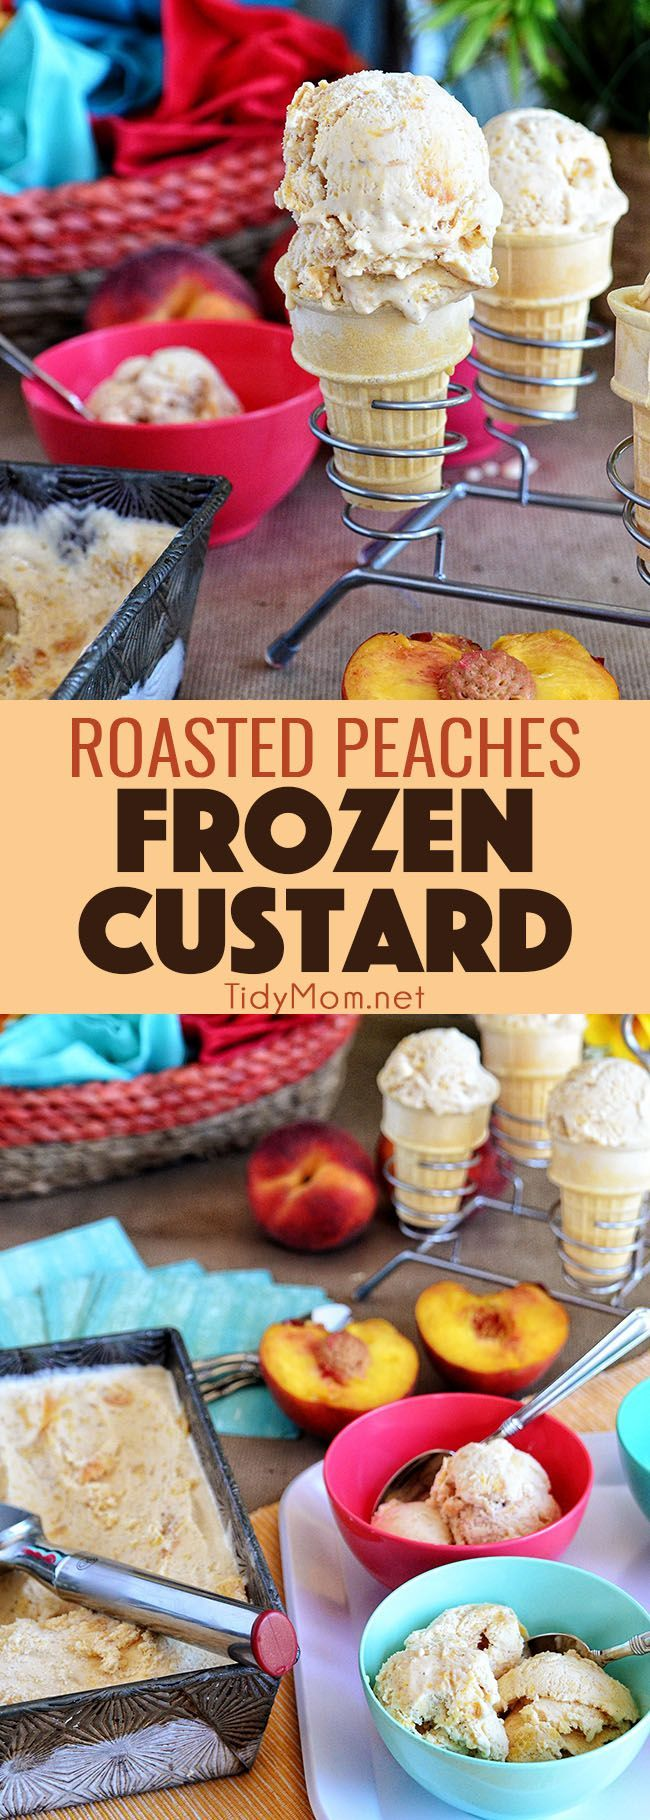 When the days are filled with bike rides, swimming, frozen treats and fresh fruit .....combine the signs of summer into a delicious creamy Roasted Peach Frozen Custard.  Serve in a cone or a bowl, either way it's sure to cool you off. find this easy homem